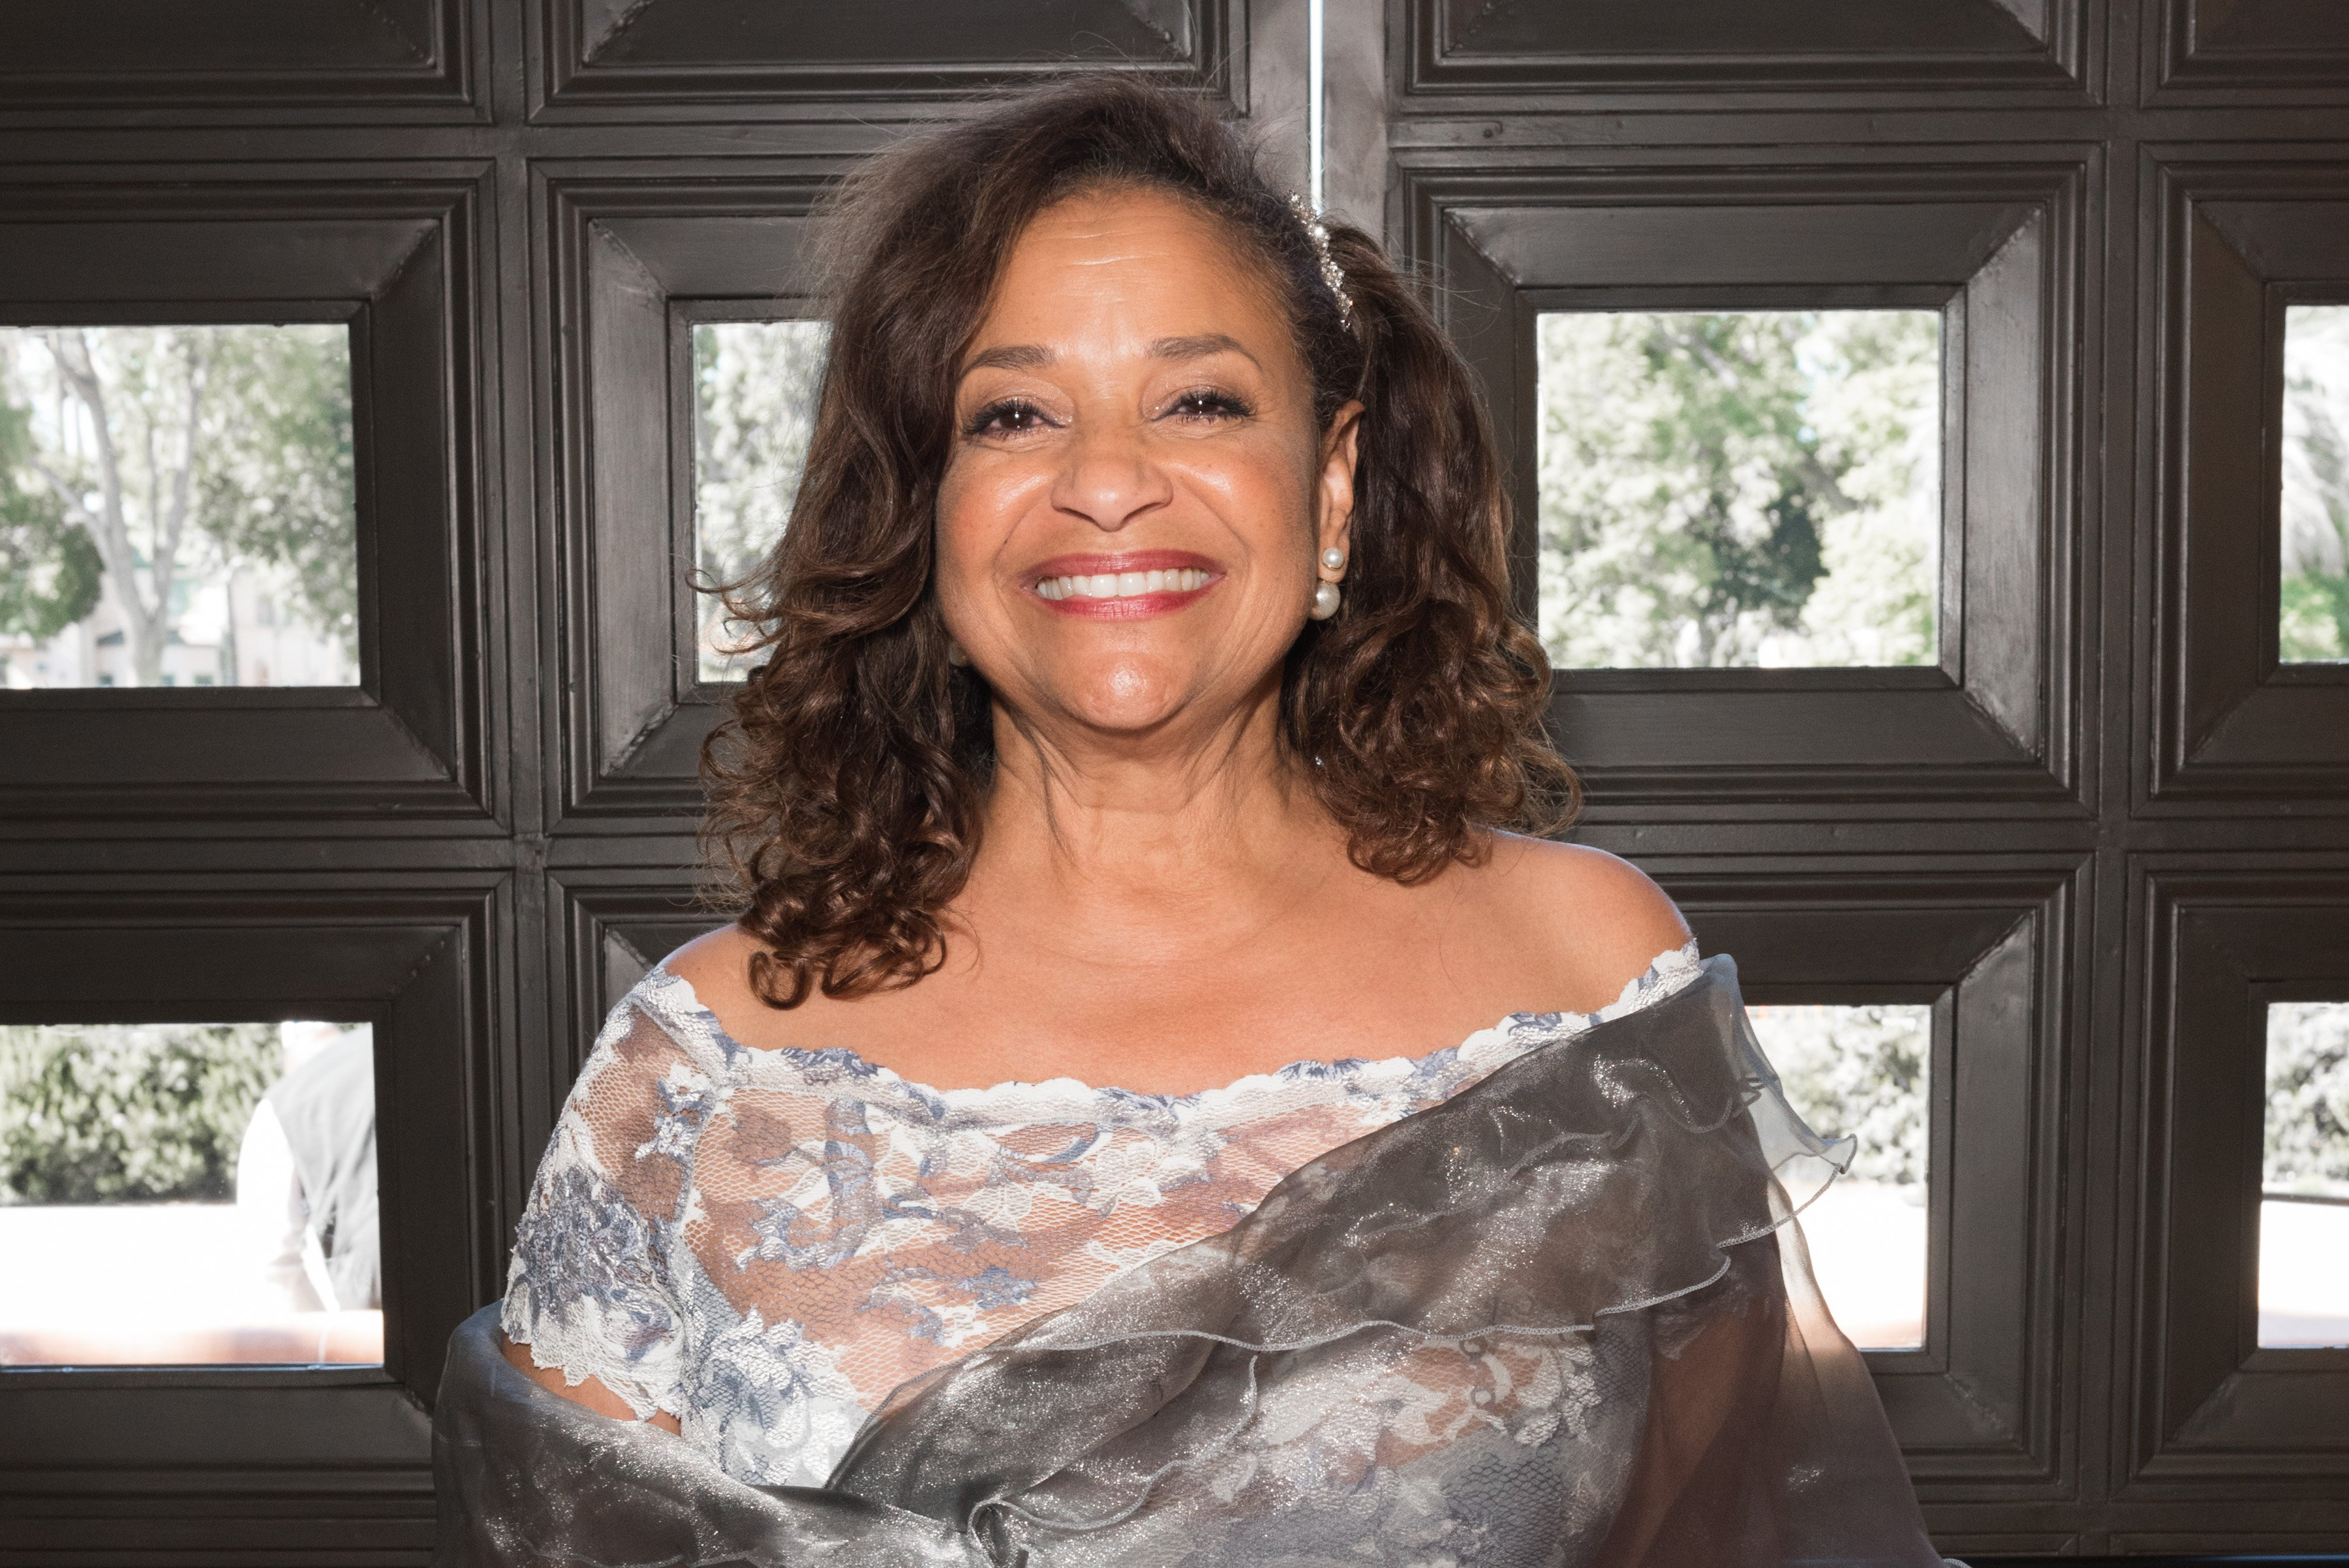 """Debbie Allen at the """"Turn Me Loose"""" - Red Carpet event at Wallis Annenberg Center for the Performing Arts in Beverly Hills, California on October 15, 2017. 